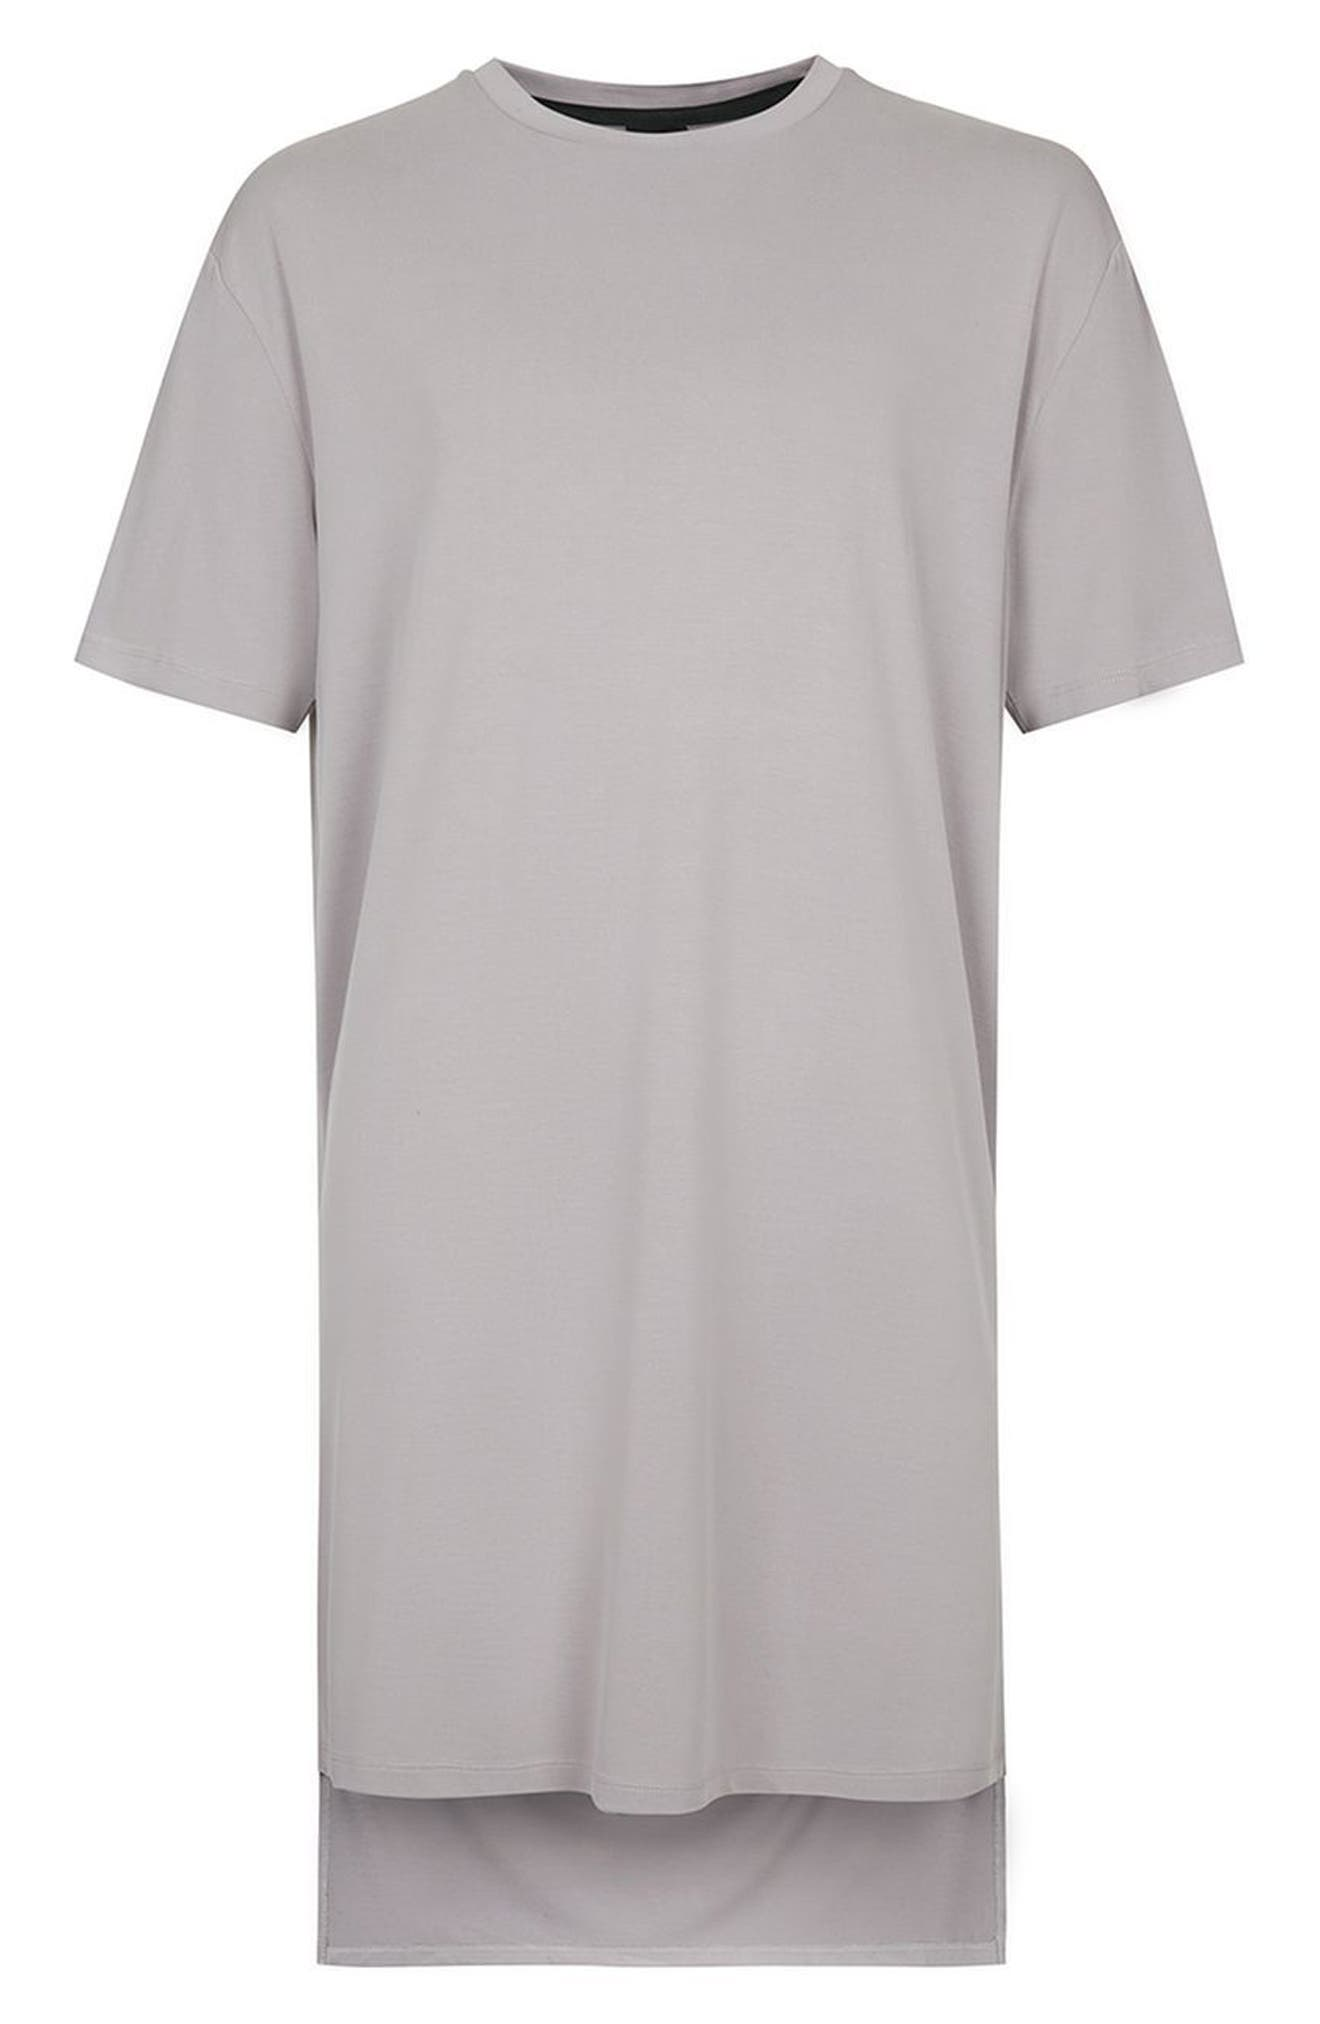 AAA Collection Longline T-Shirt,                             Alternate thumbnail 4, color,                             020